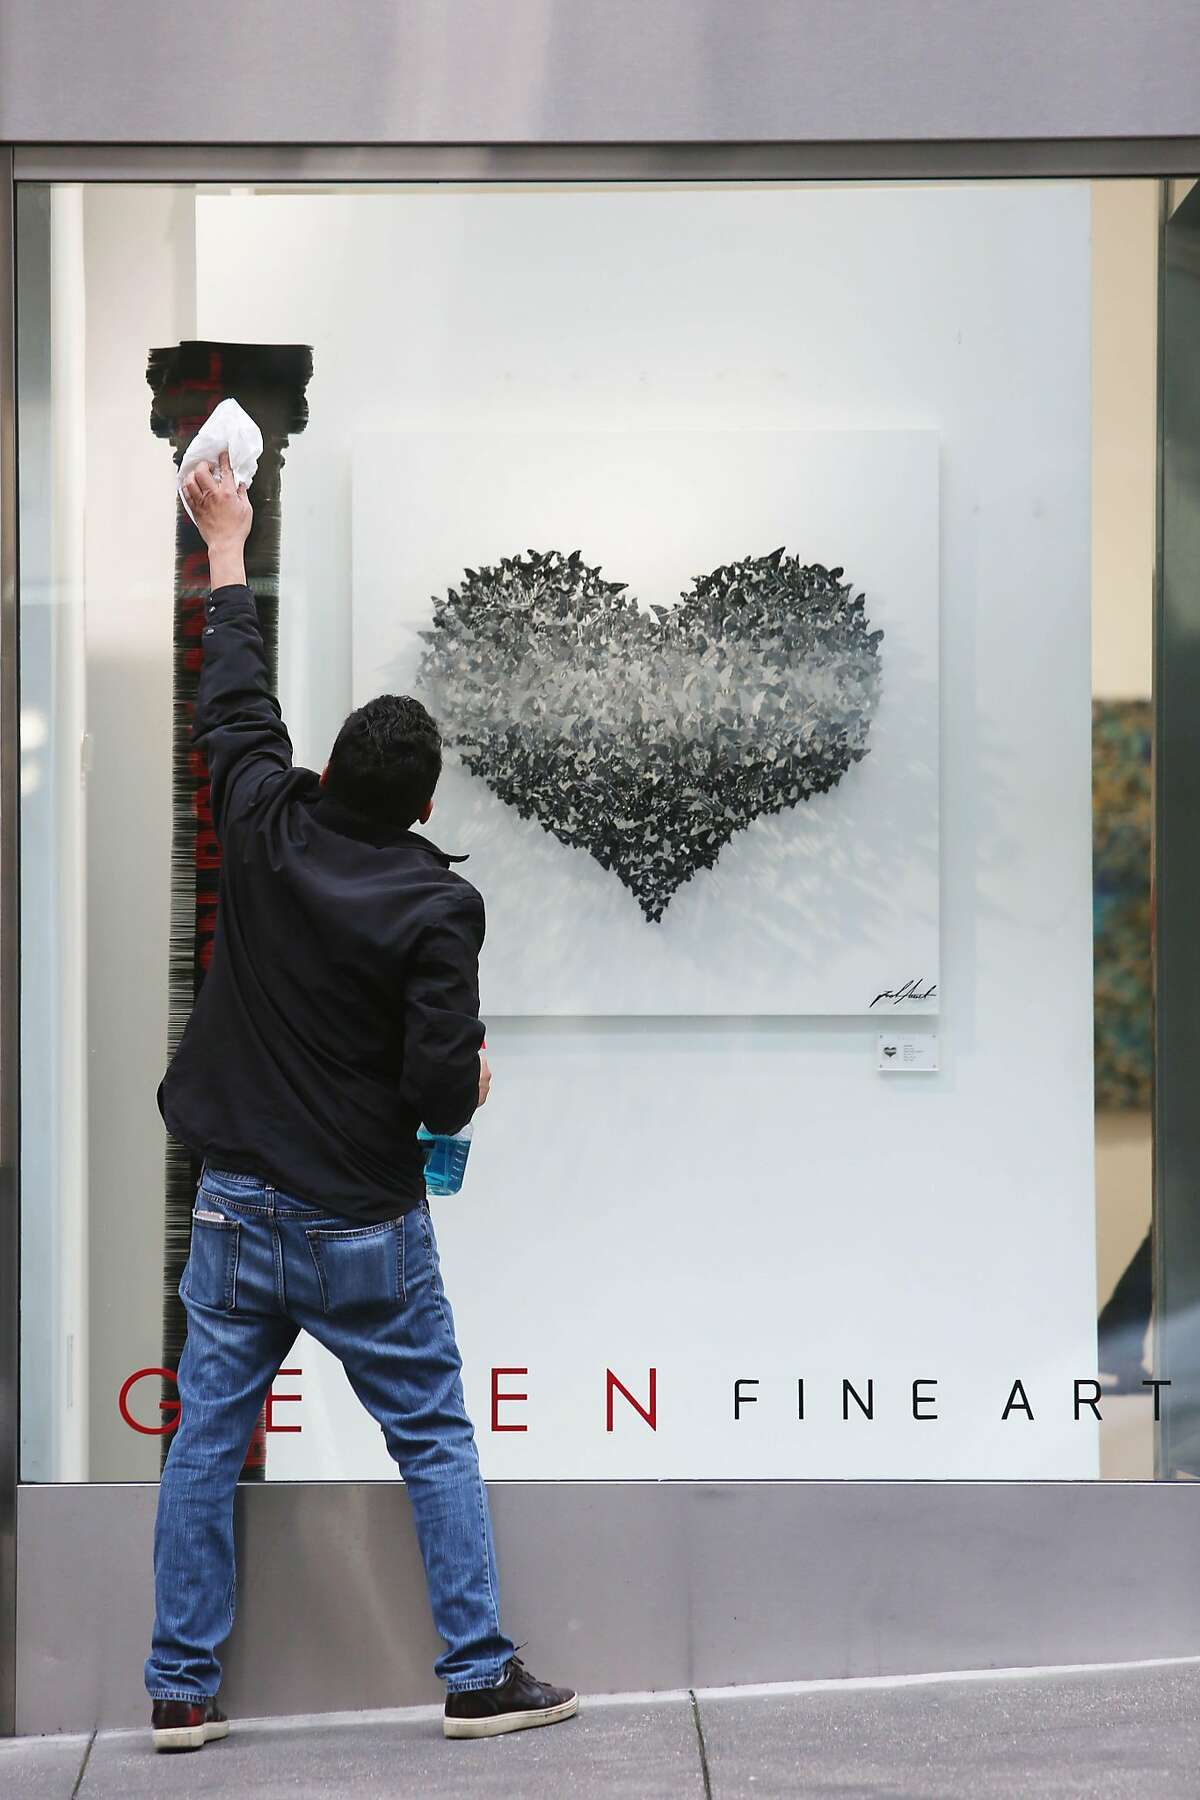 A man cleans the windows outside of Gefen Fine Art on Monday, March 16, 2020 in San Francisco, Calif. Bui said business has been slow for two weeks.